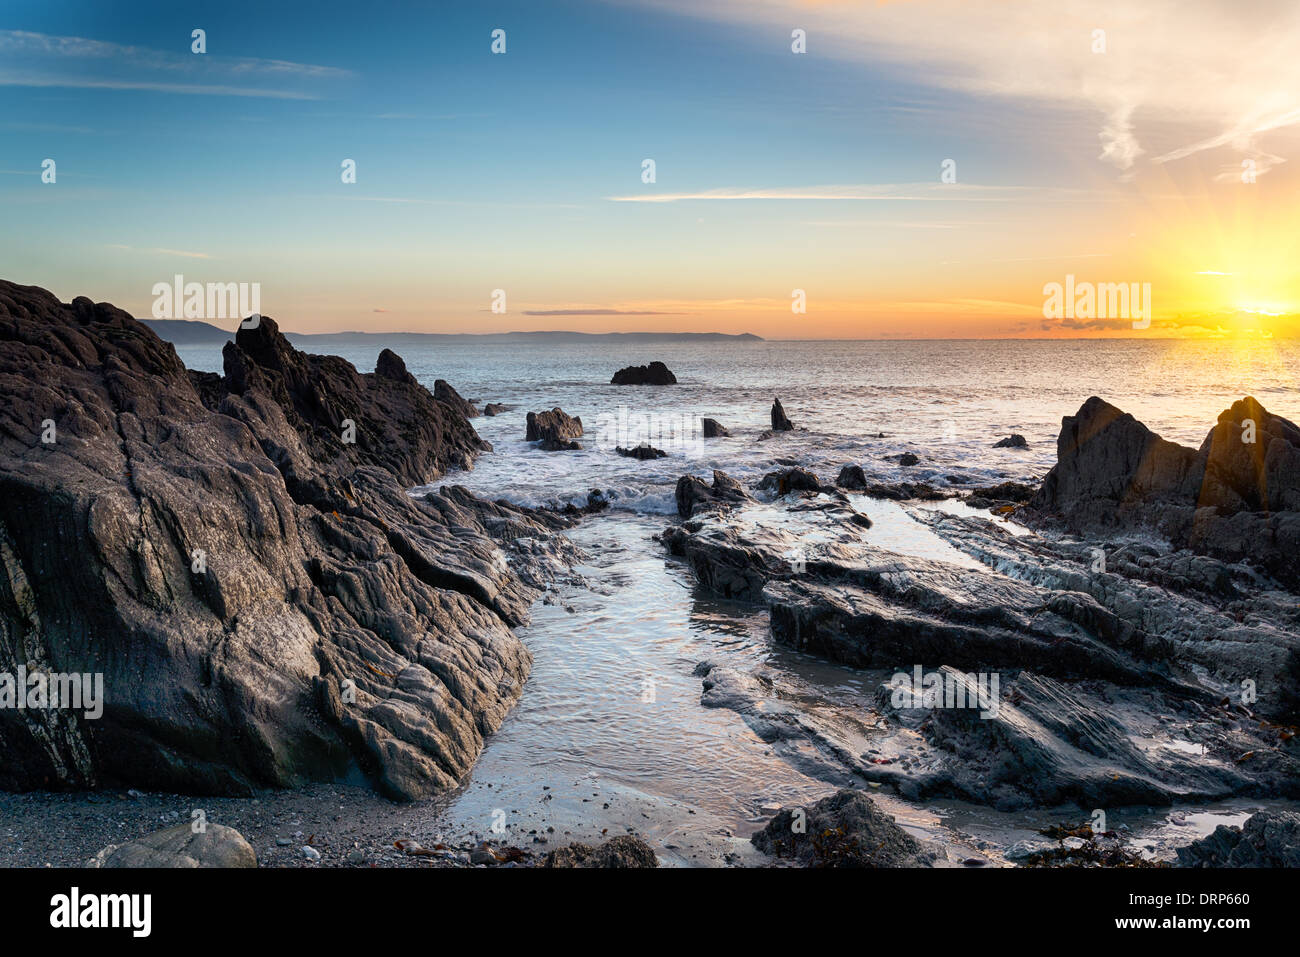 Sunrise at a rock beach at Looe in Cornwall Stock Photo